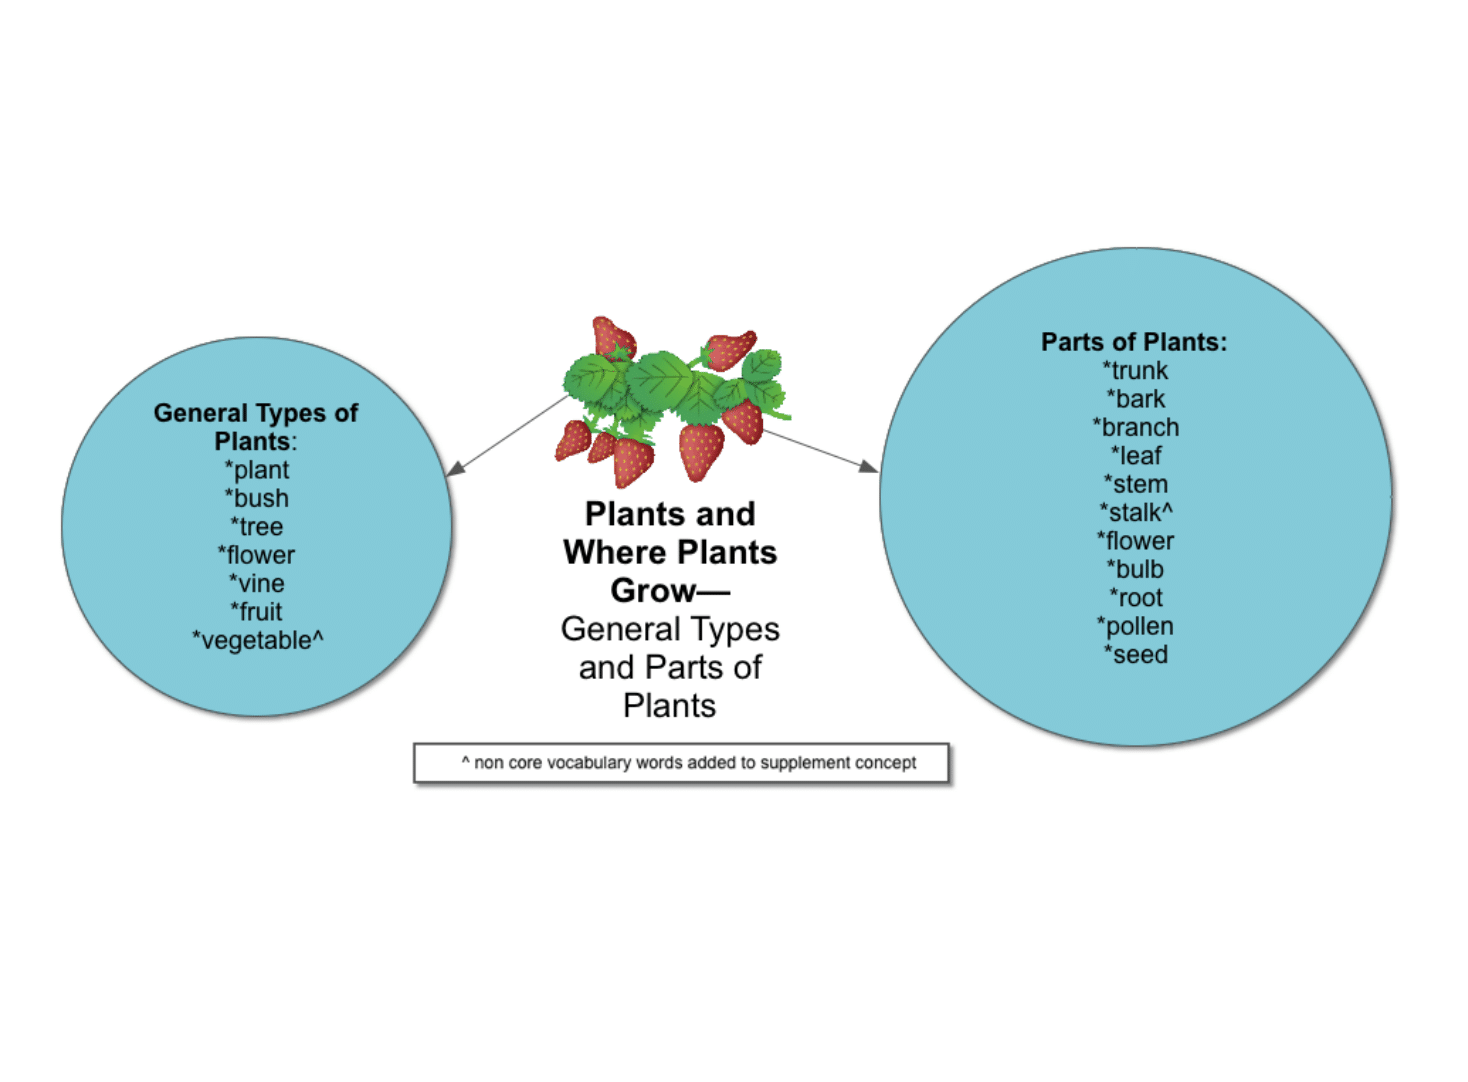 General types and parts of plants